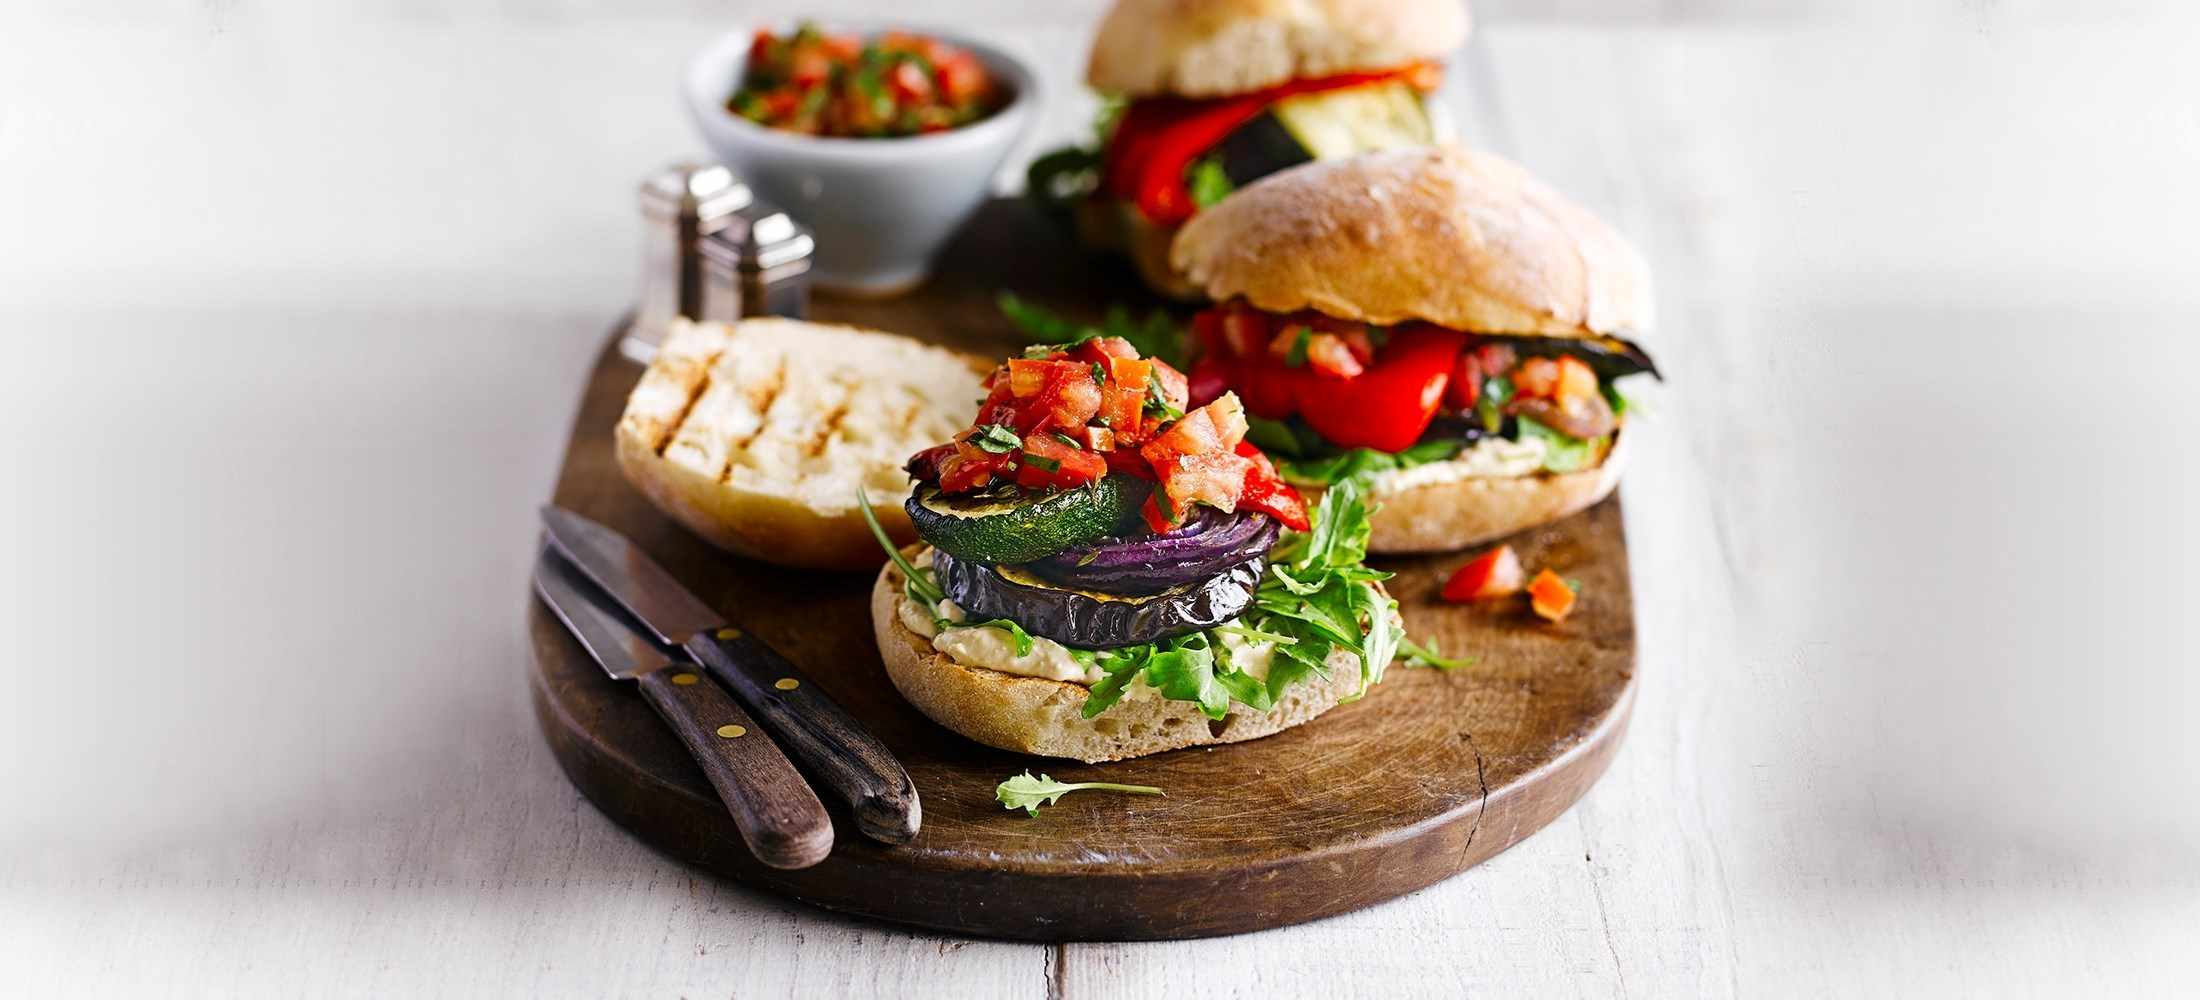 Quick vegetarian recipes ready in under 30 minutes - Allotment burgers